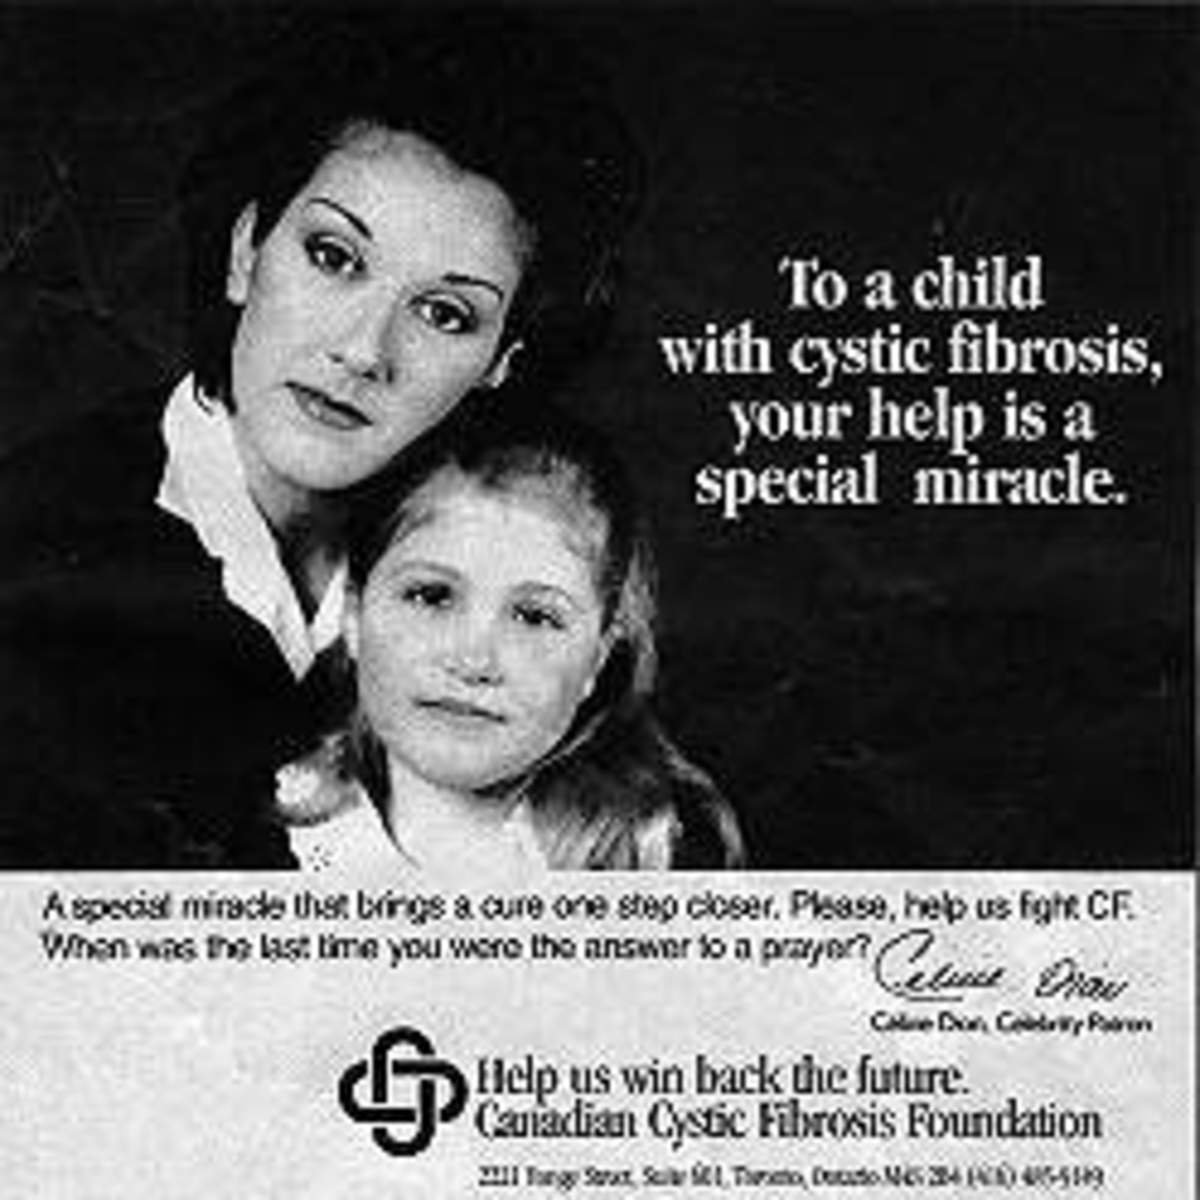 Celine Dion has been promoting public awareness for the Canadian Cystic Fibrosis Foundation since the Eighties